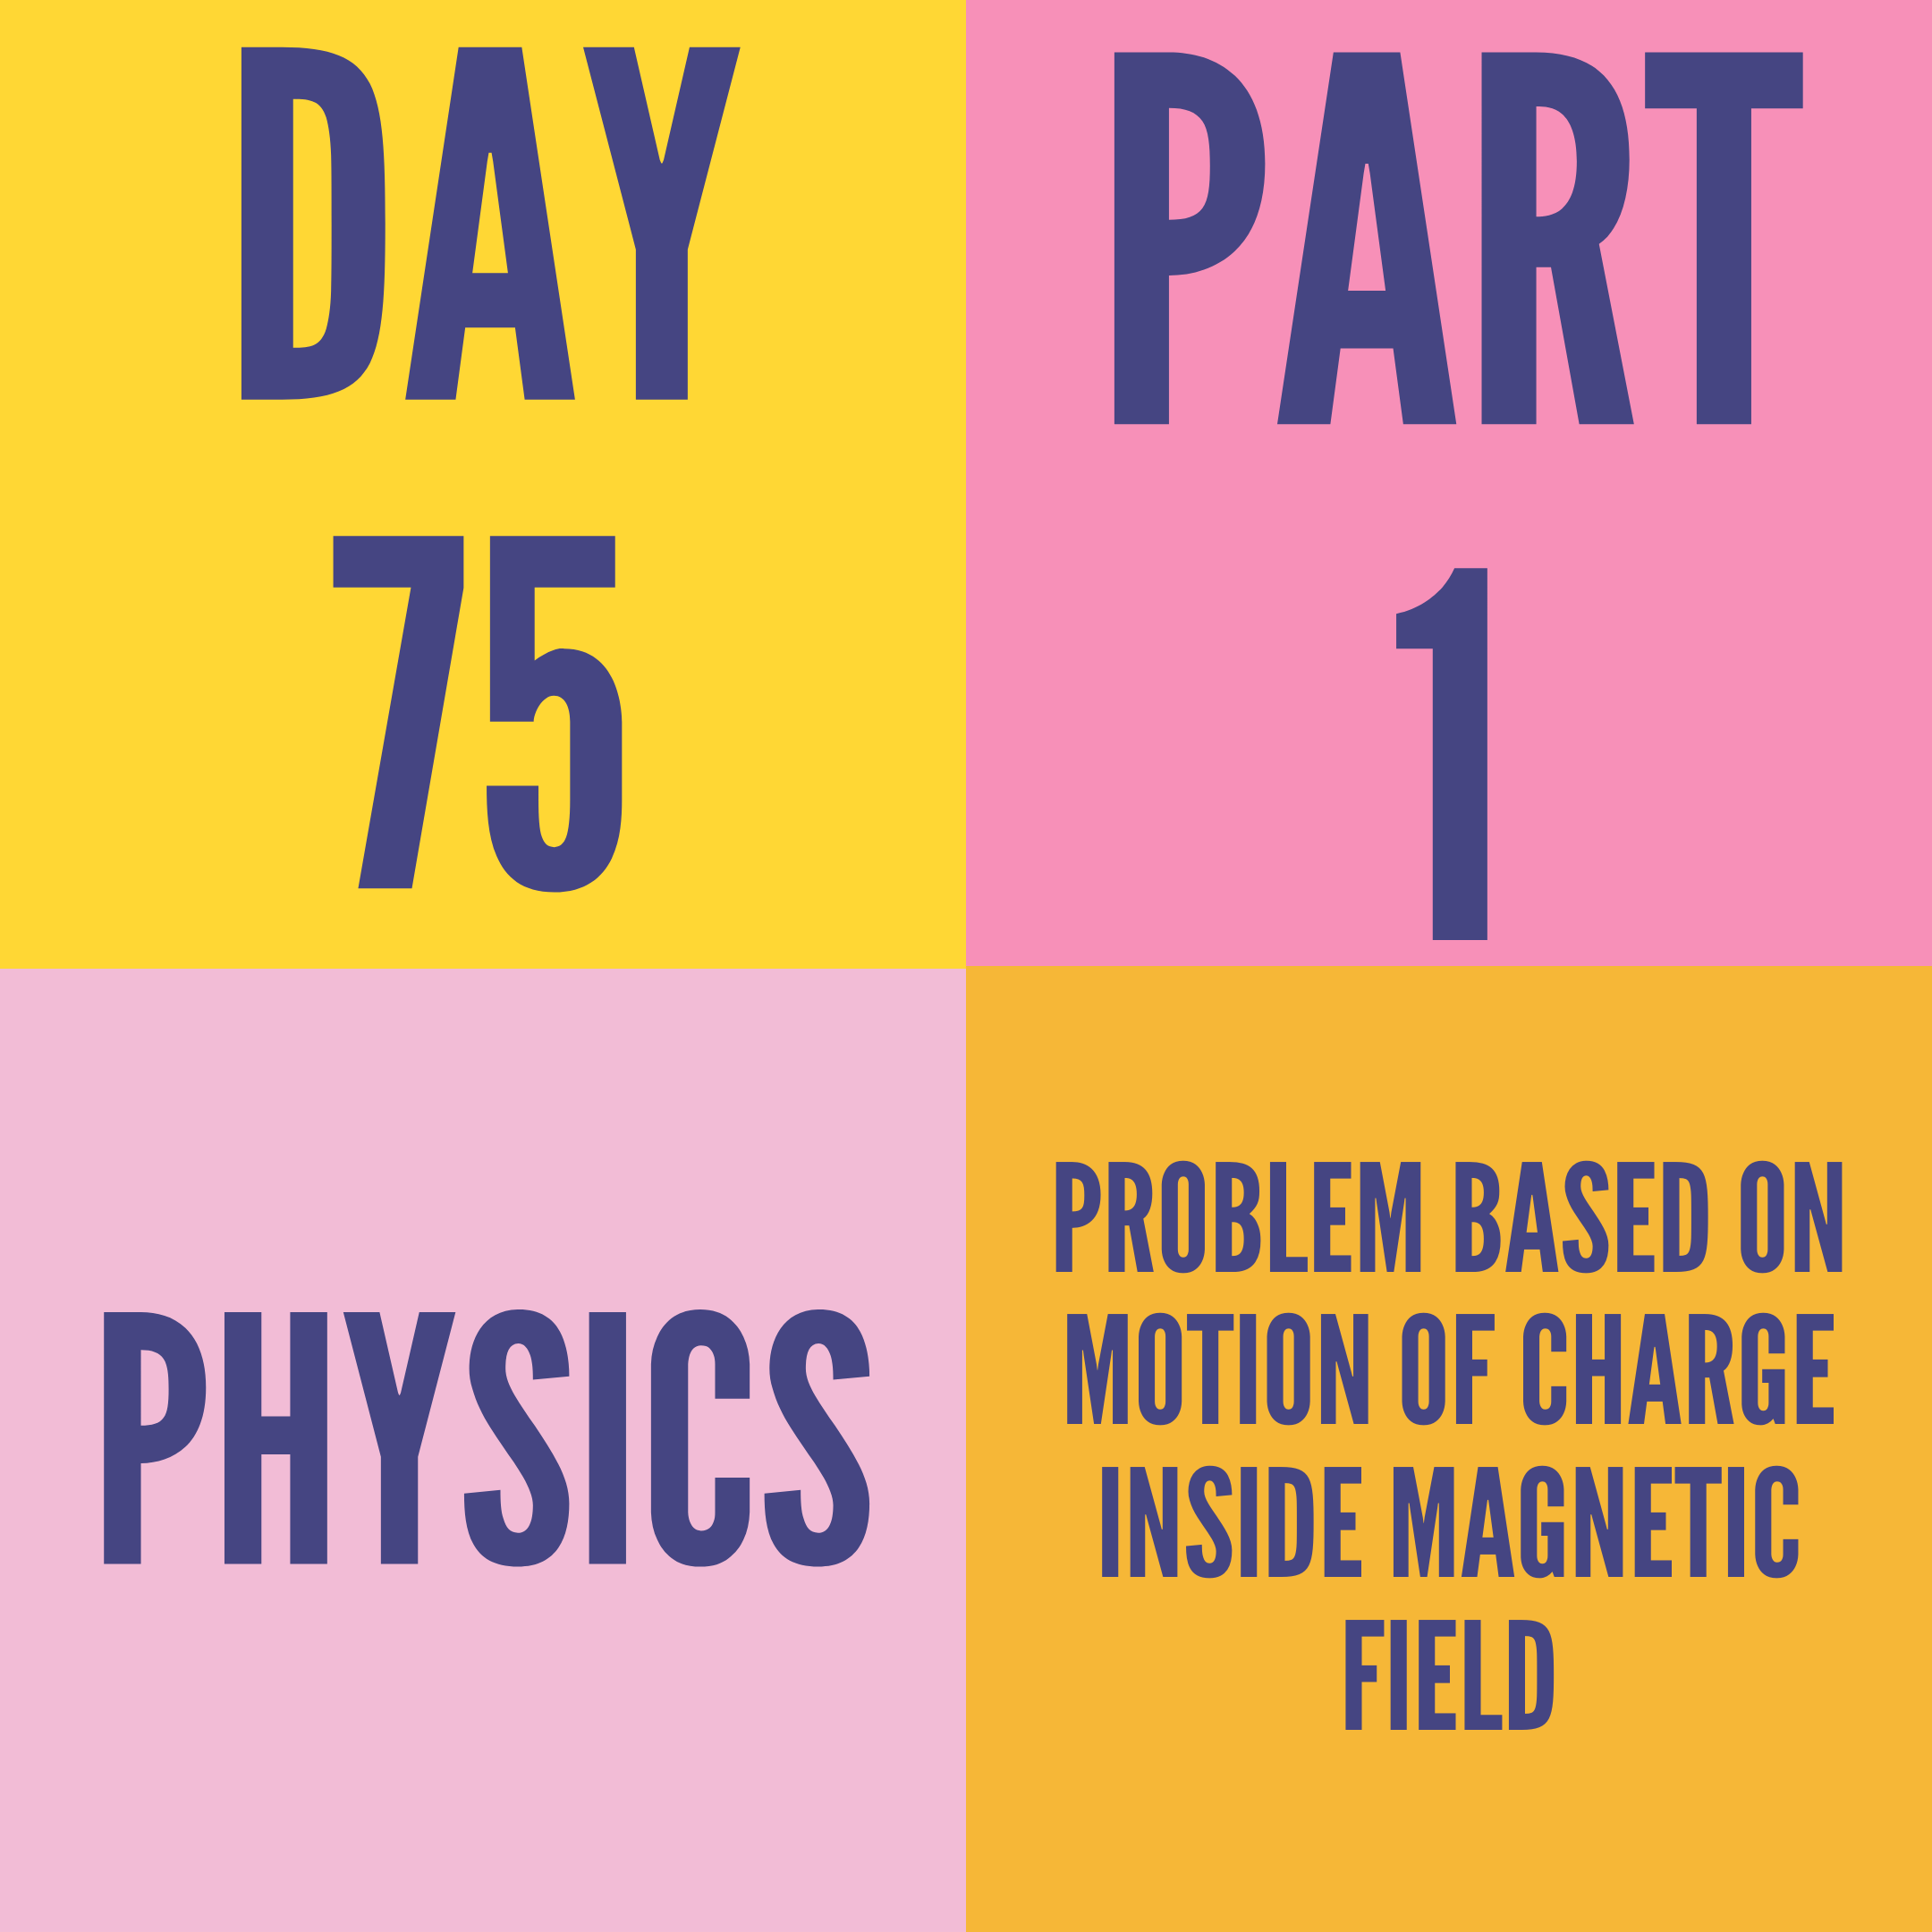 DAY-75 PART-1 PROBLEM BASED ON MOTION OF CHARGE INSIDE MAGNETIC FIELD